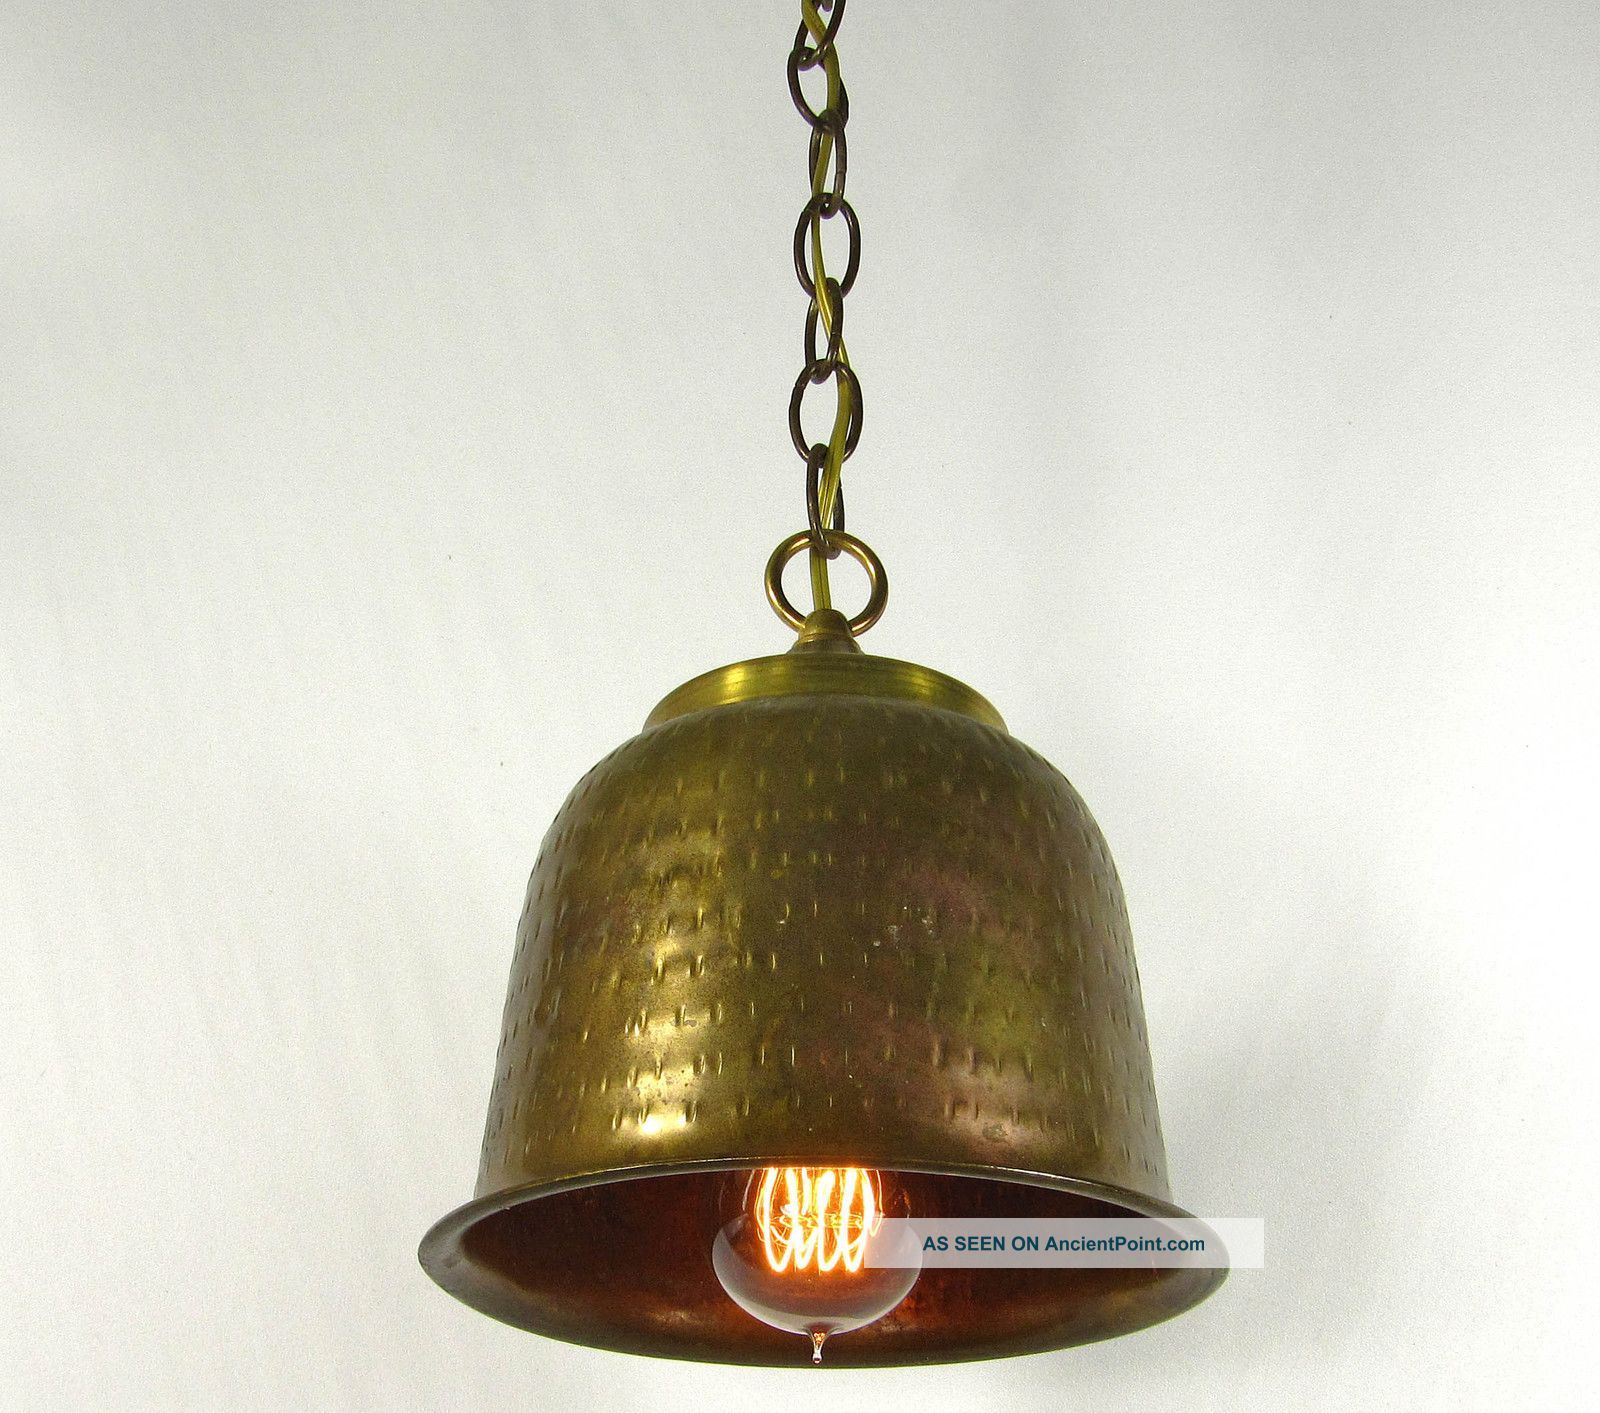 Vintage Pendant Cast Brass Hammered Lamp Shade Re Purpose Design Brass Canopy Chandeliers, Fixtures, Sconces photo